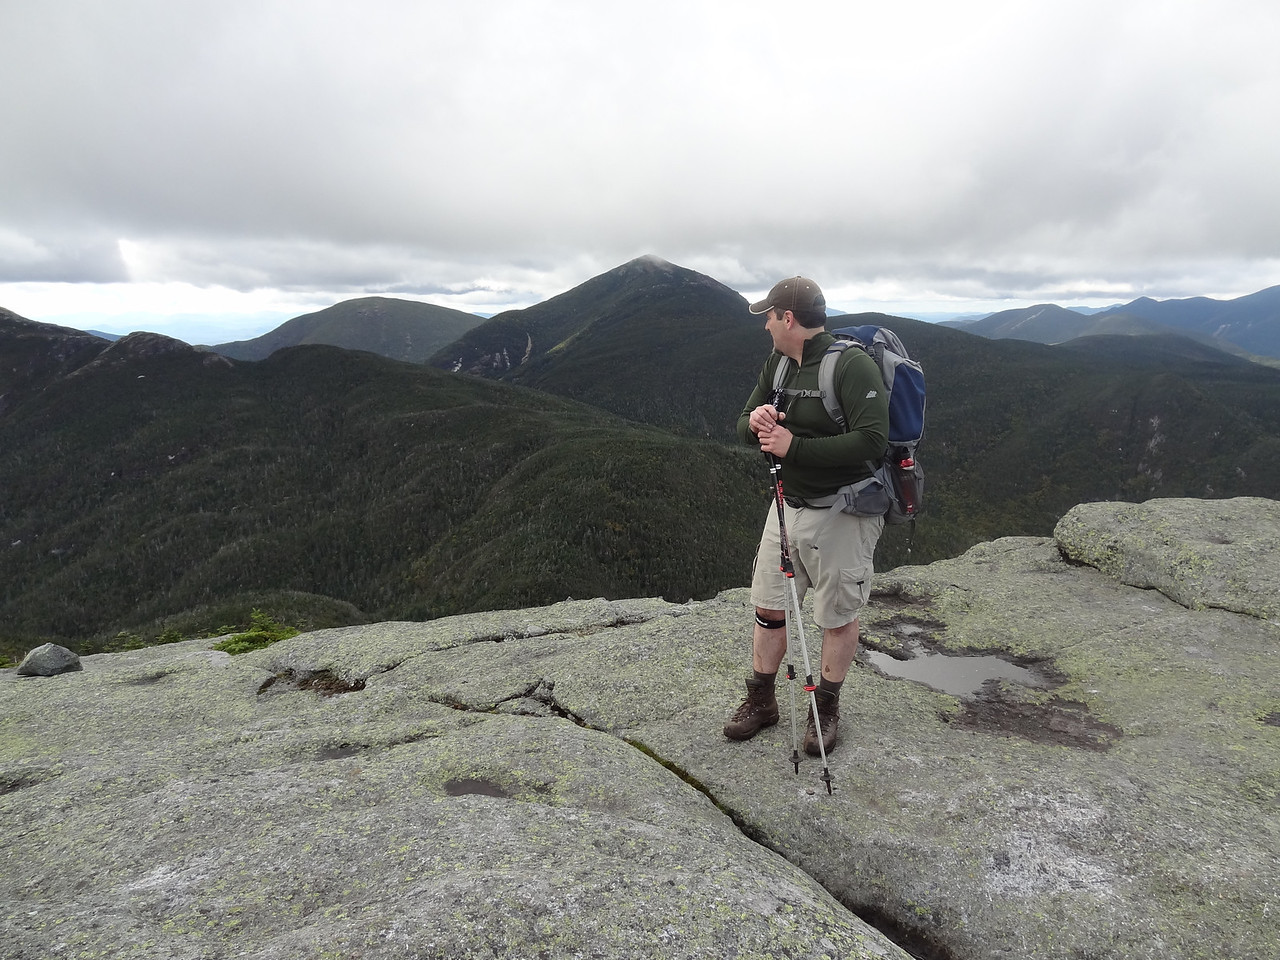 Looking back at Haystack ridge: little Haystack, false summit and Haystack (farthest left partially viewable summit).